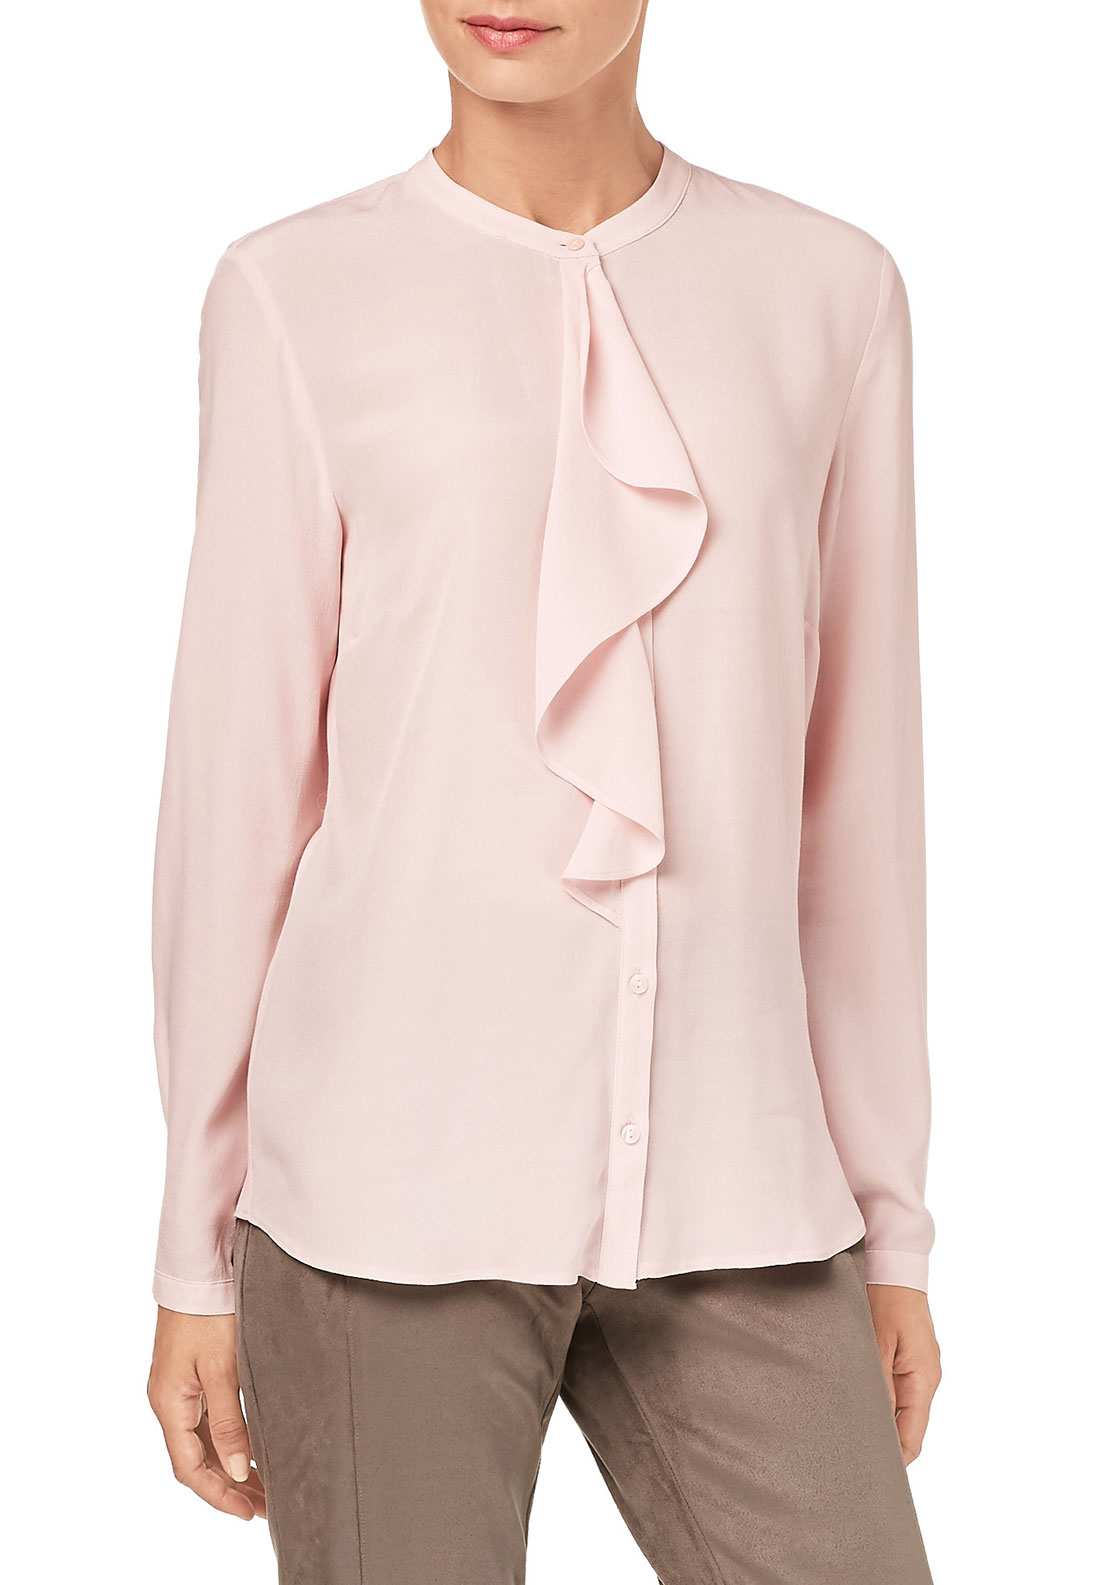 Gerry Weber Ruffle Trim Blouse, Pale Pink